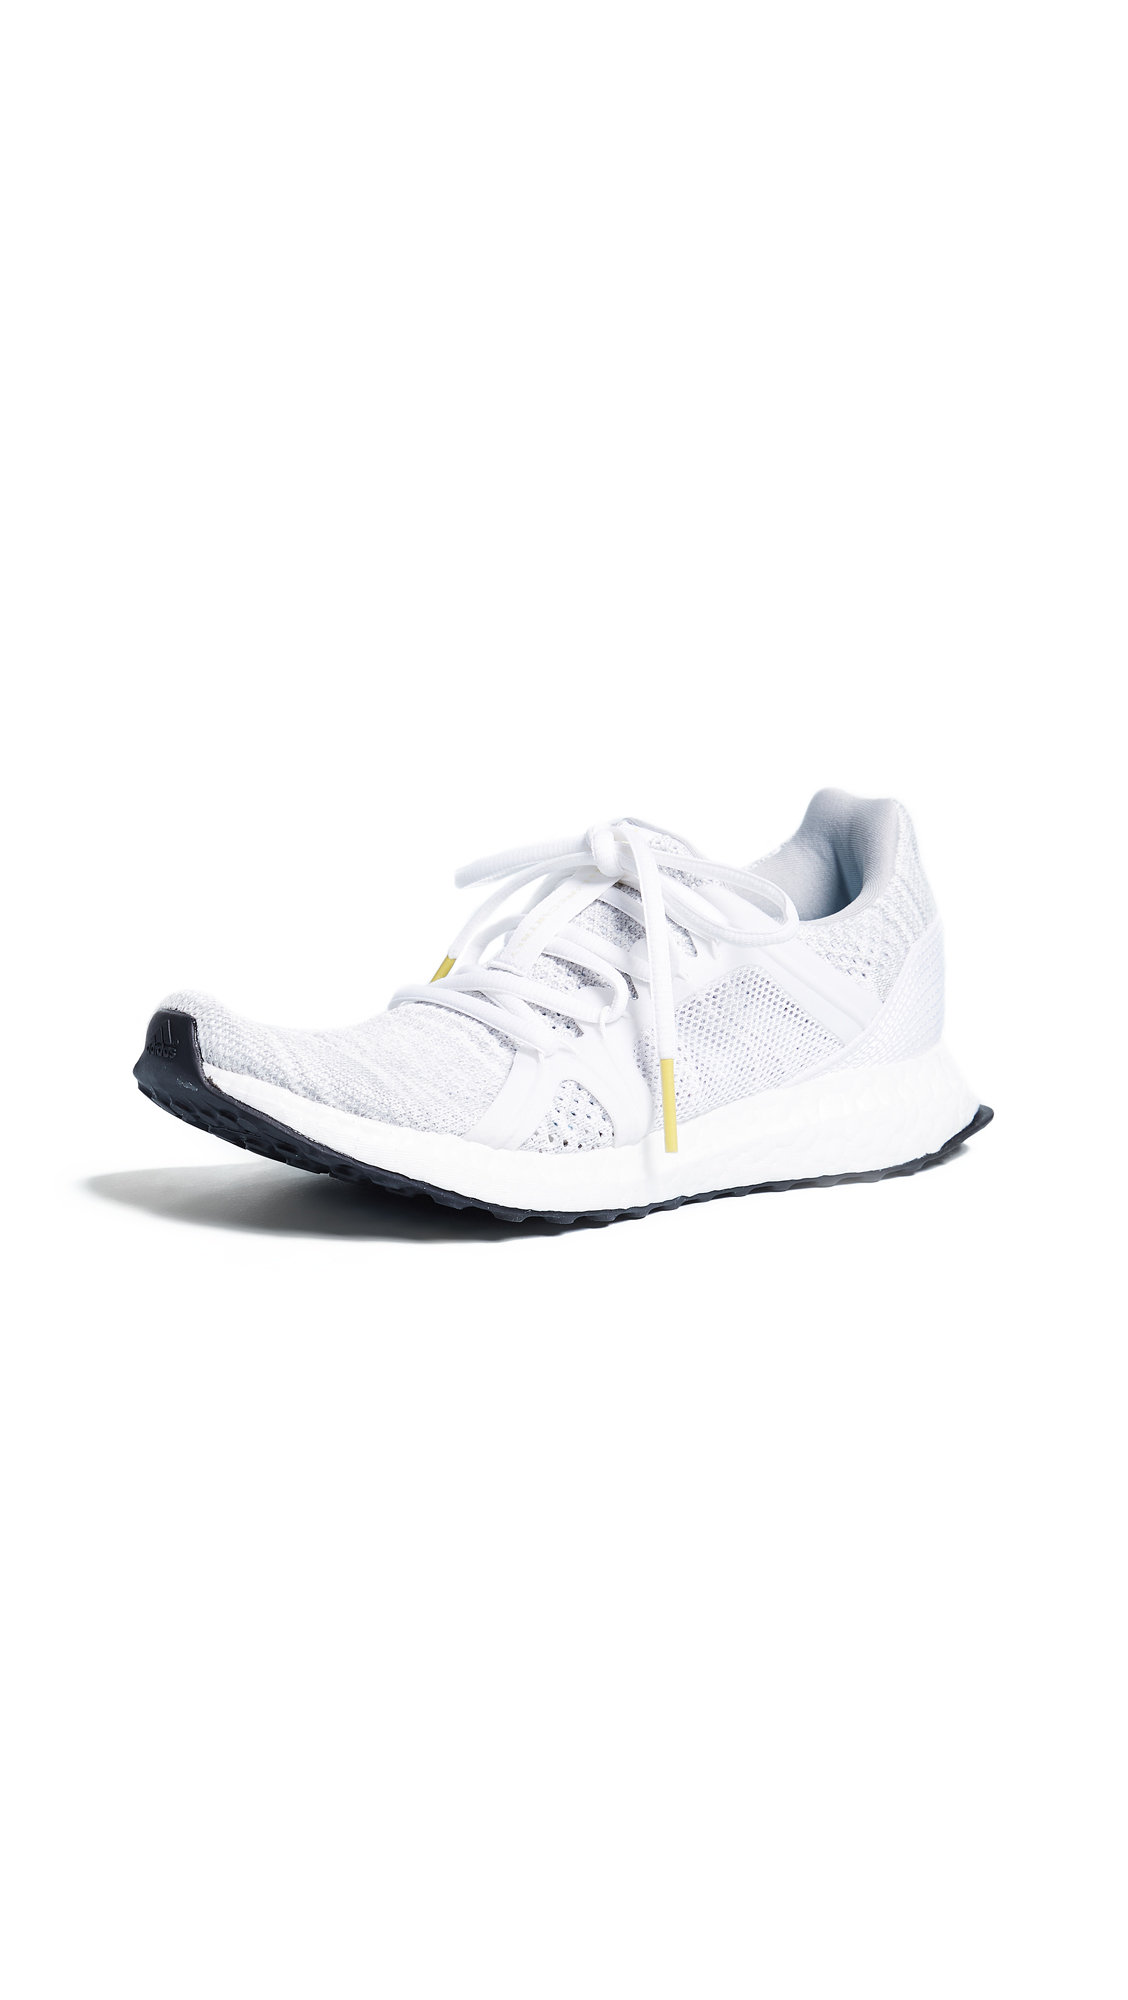 adidas by Stella McCartney UltraBOOST PARLEY Sneakers - Stone/Core White/Mirror Blue